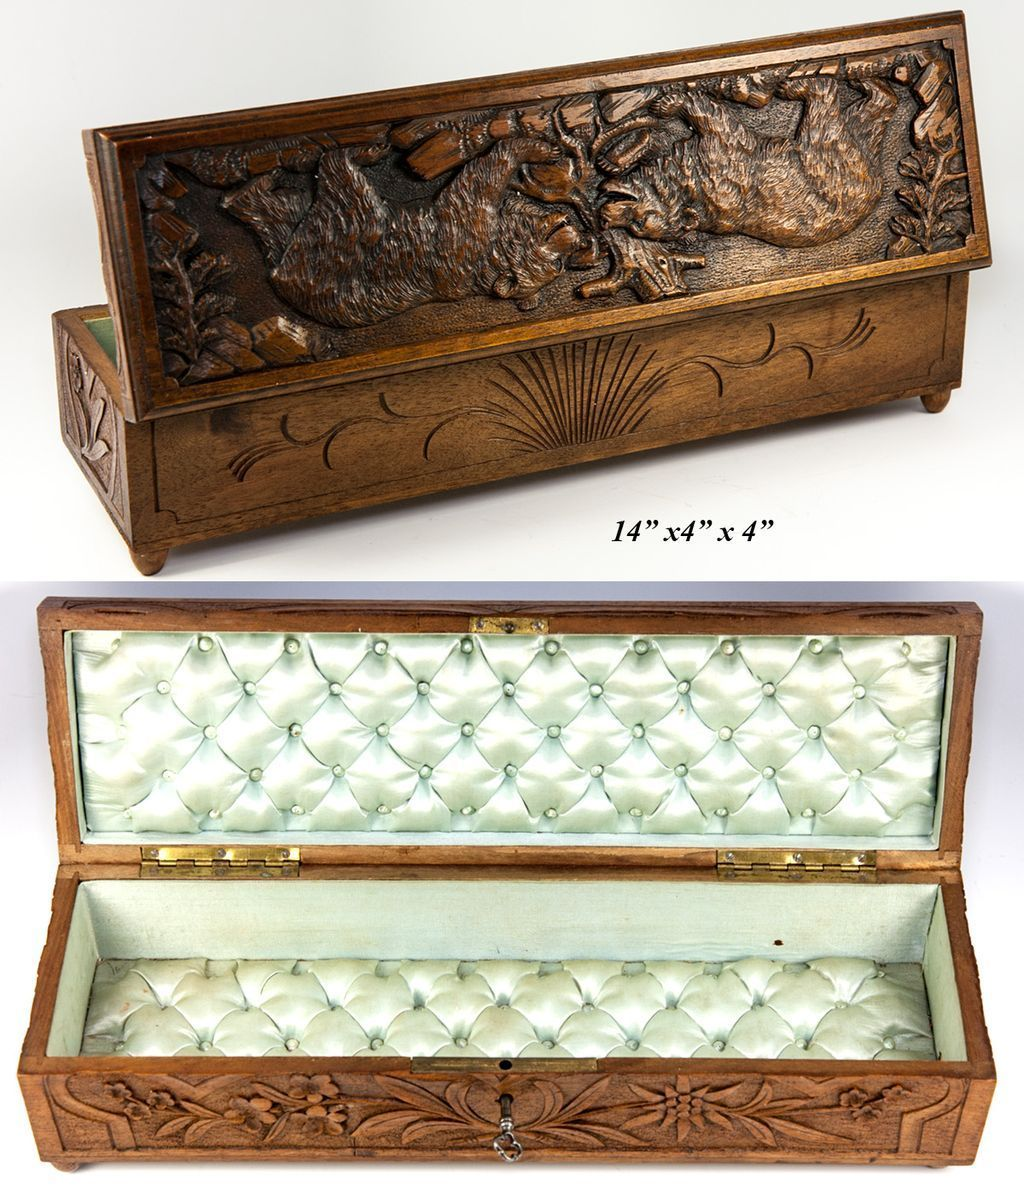 Antique Hand Carved Black Forest Jewelry Or Glove Box Casket With Bears 14 Wood Jewelry Box Old Wooden Boxes Casket